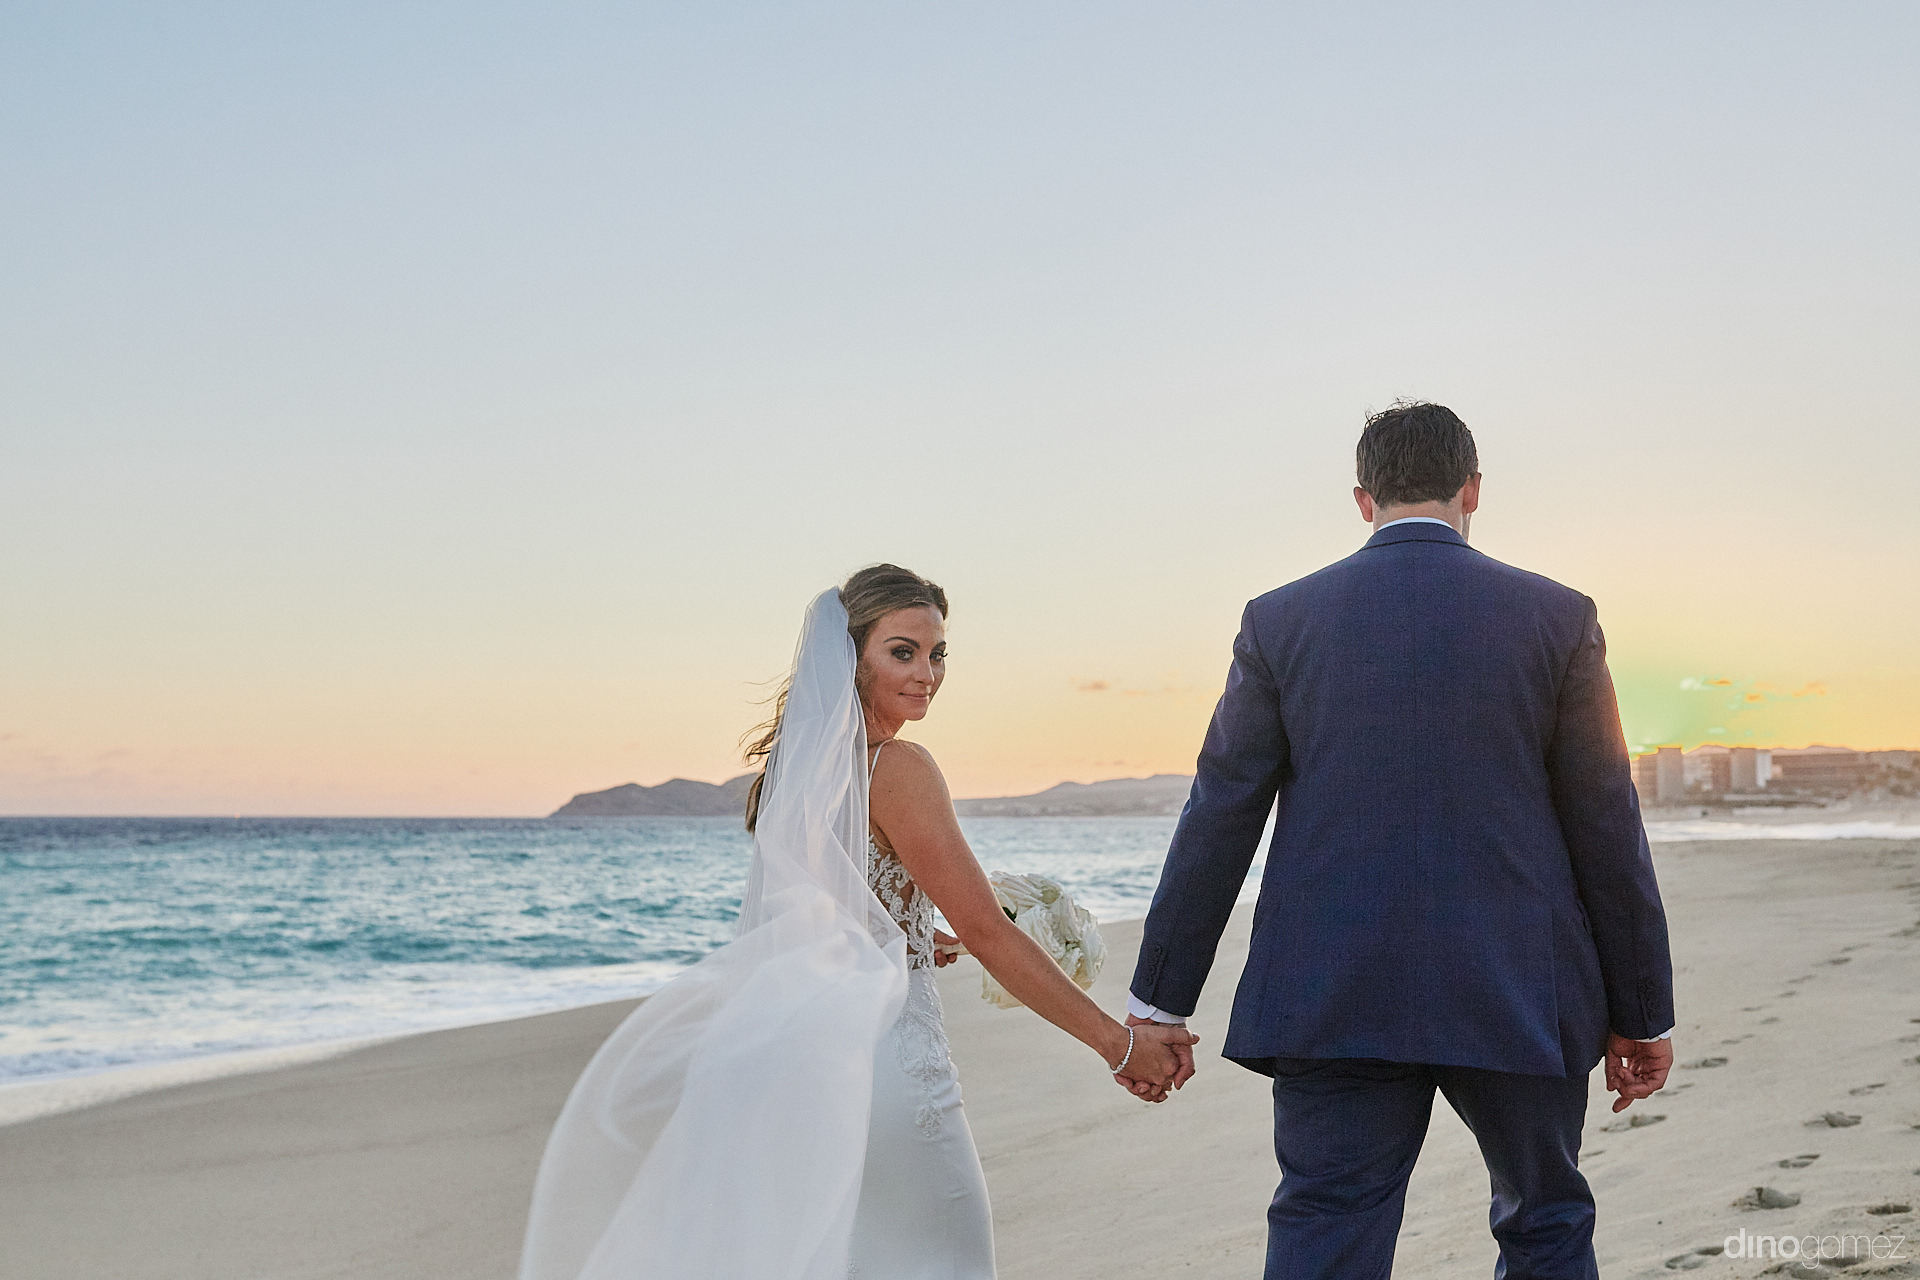 Cabo Destination Wedding Packages - Luxury Wedding Photographer In Cabo Dino Gomez - C&T